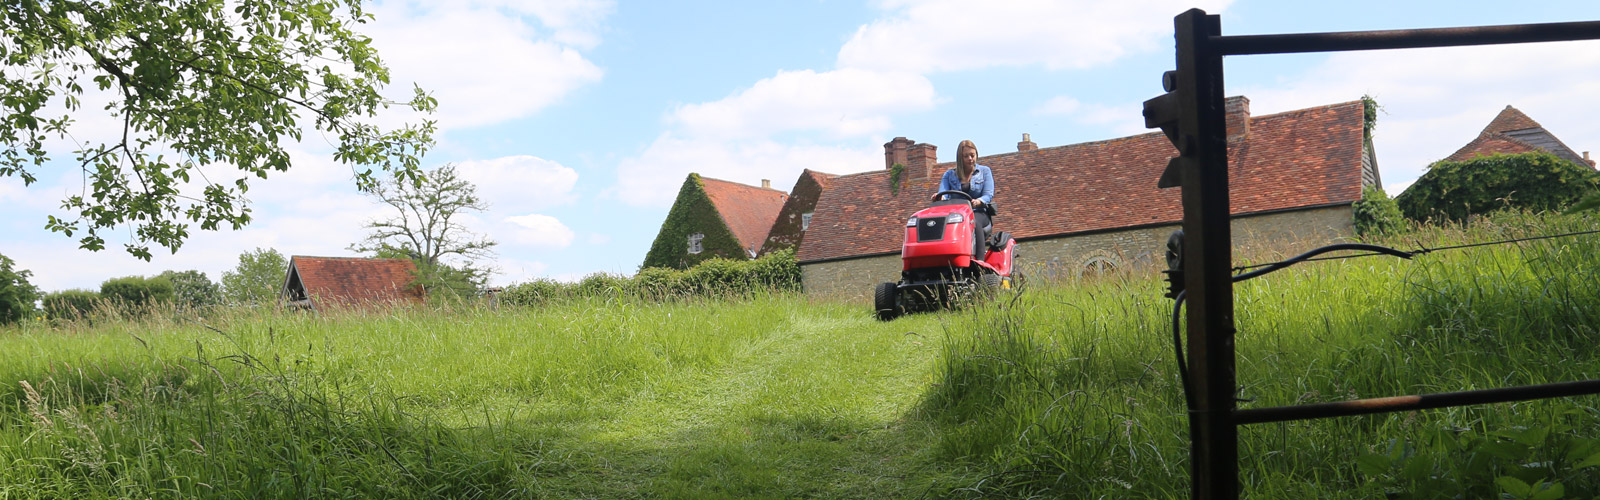 Countax B Series 4WD garden tractor ride on mower at top of slope